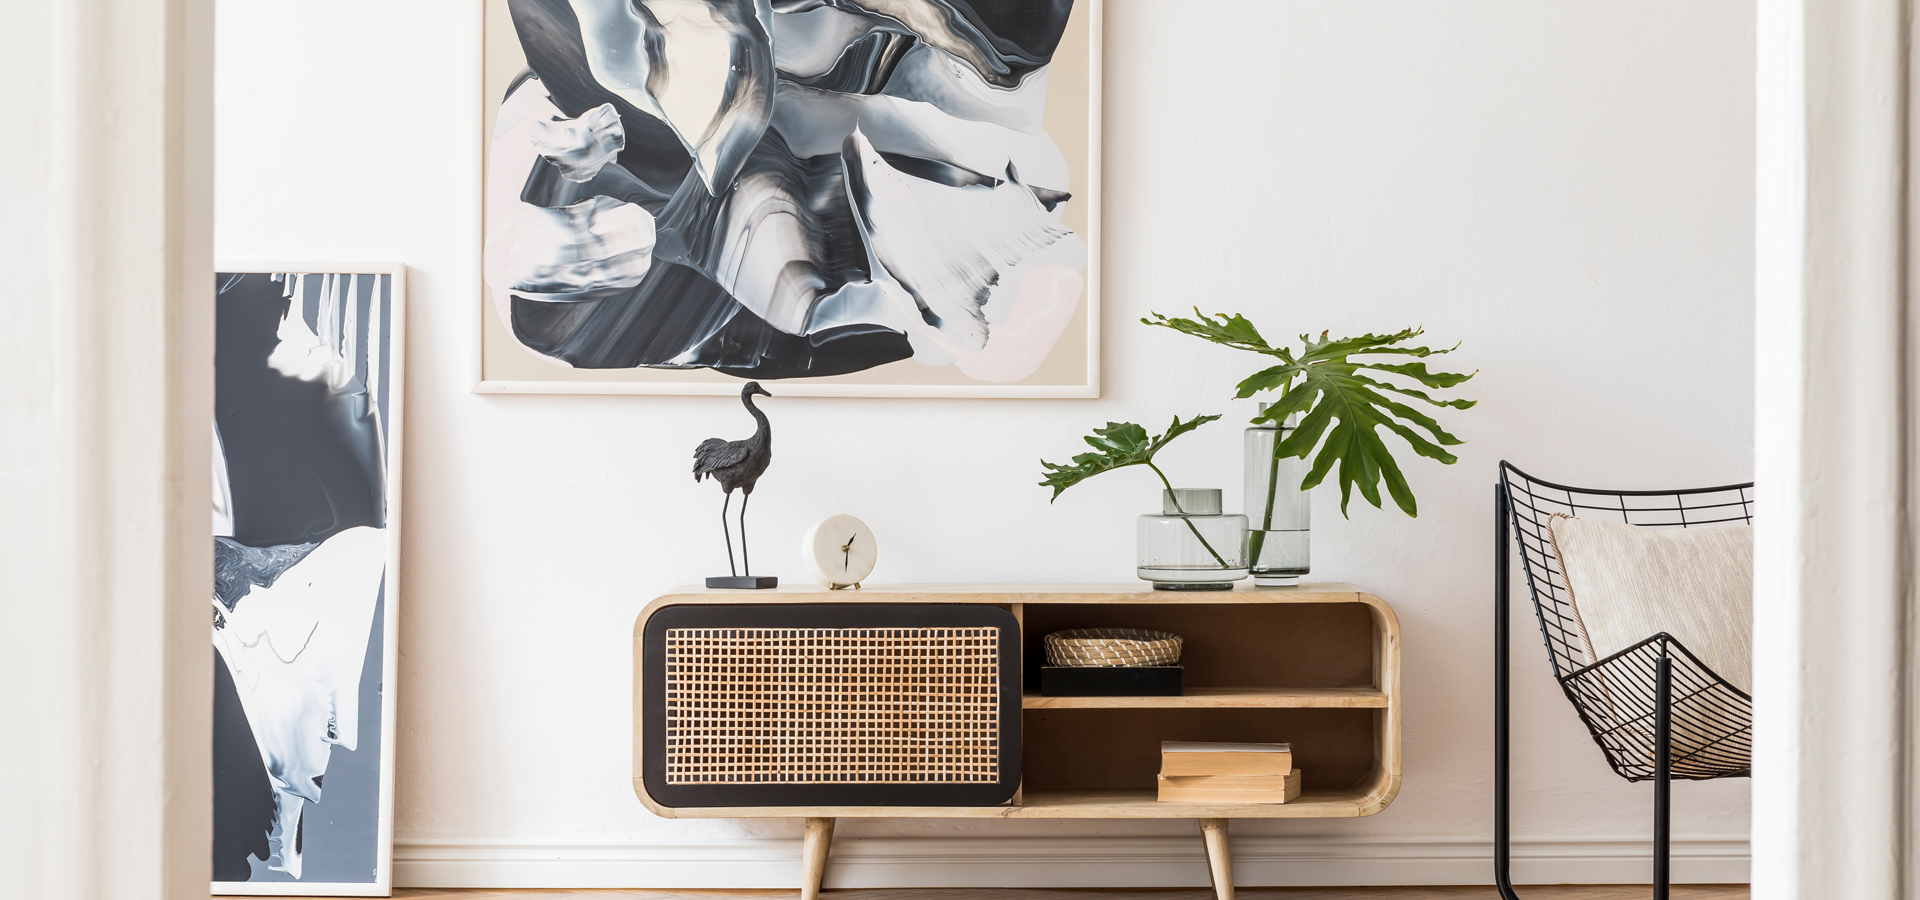 The Hottest Home Design Trends for 2021